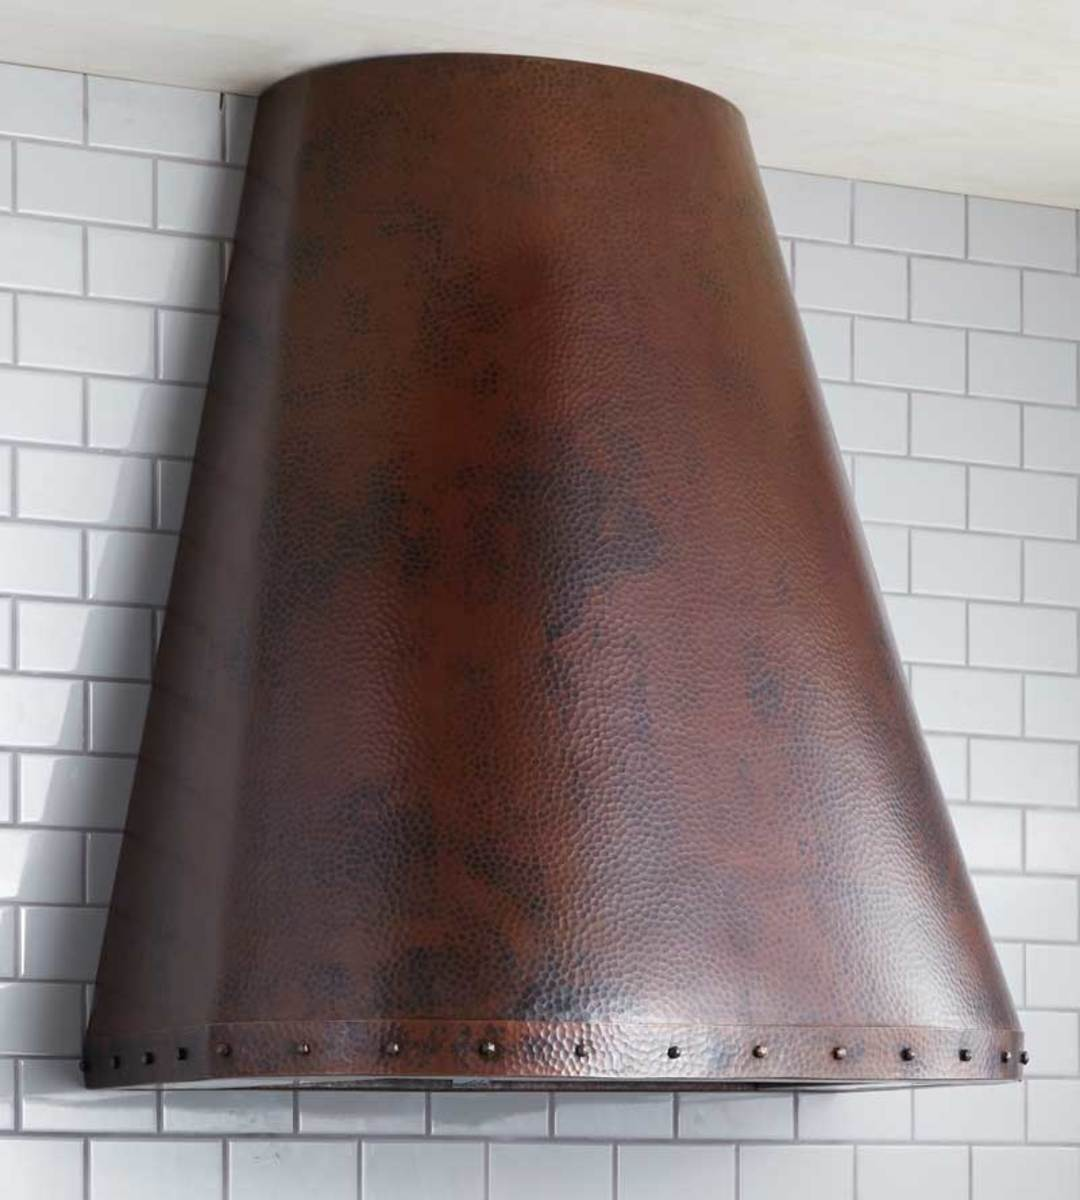 Trimmed with the hand-formed nails called clavos, the Coronado range hood is fitted with state-of-the-art ventilation.